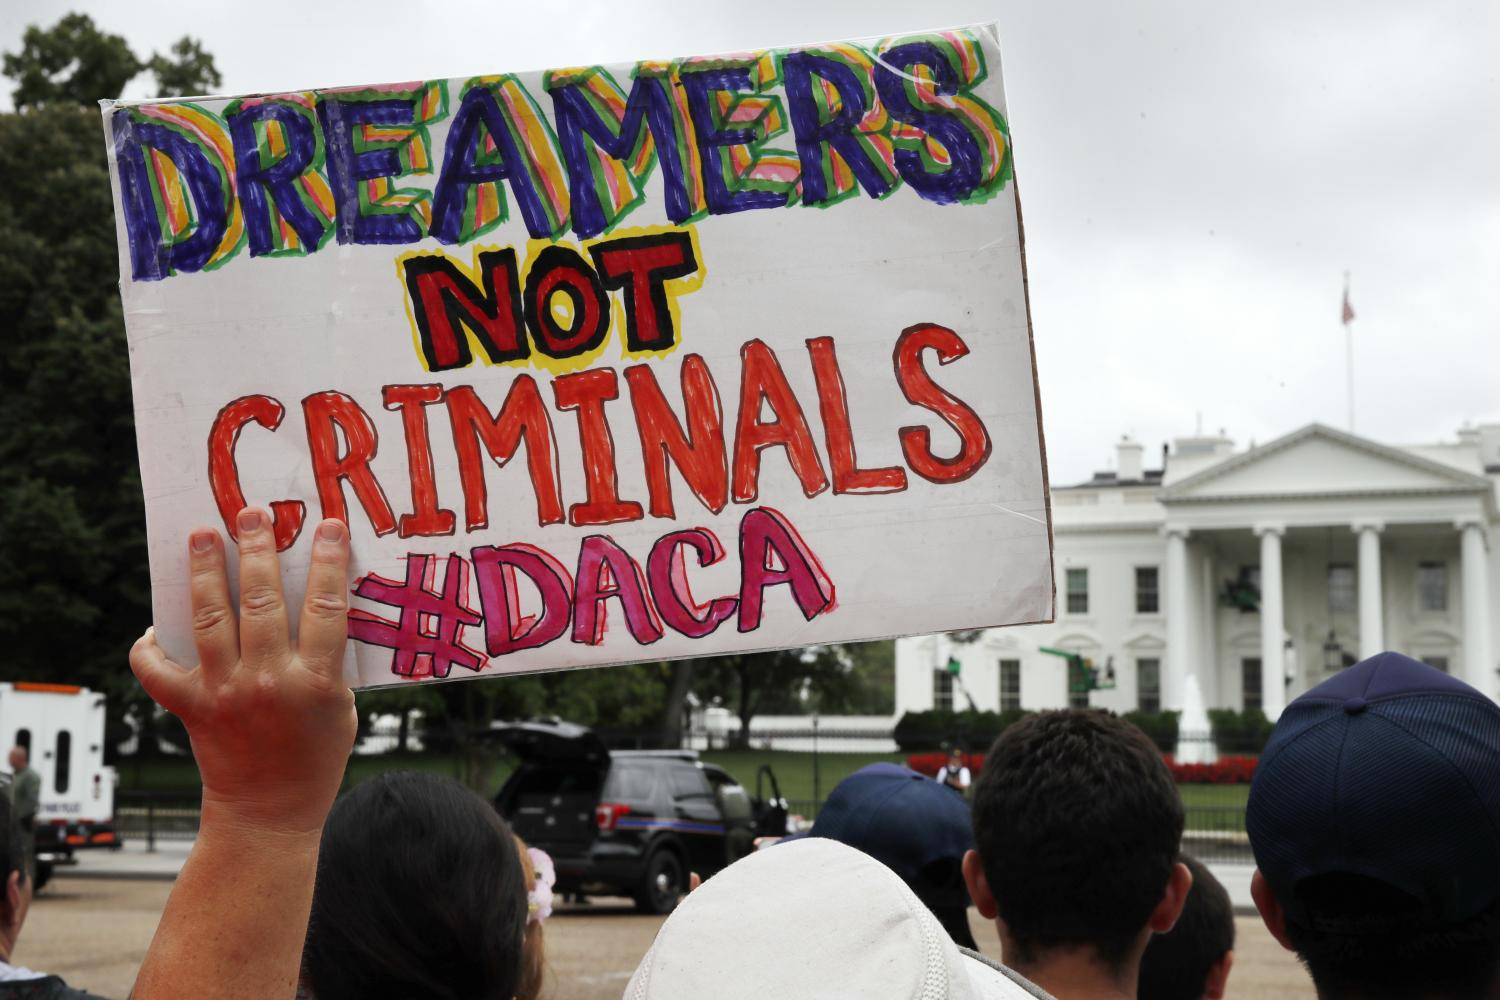 Supporters of the DACA program rally in front of the White House.